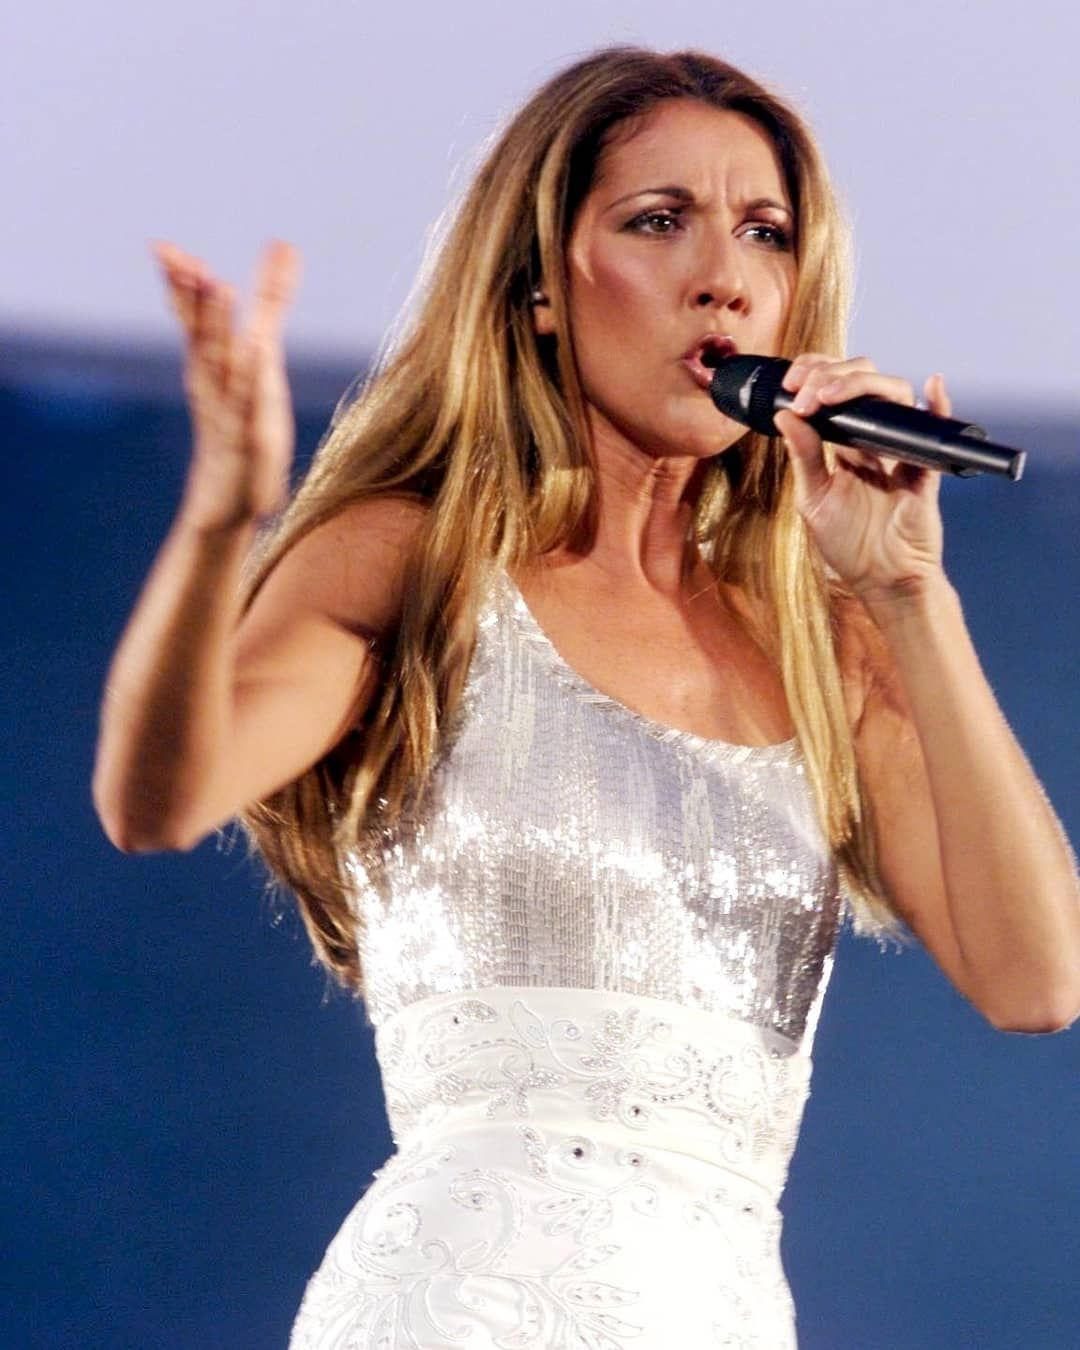 A Little Throwbacktuesday From Celine Her Let S Talk About Love Tour Celinedion Worldtour Throwback Celine Dion Throwback Instagram Let S Talk About Love